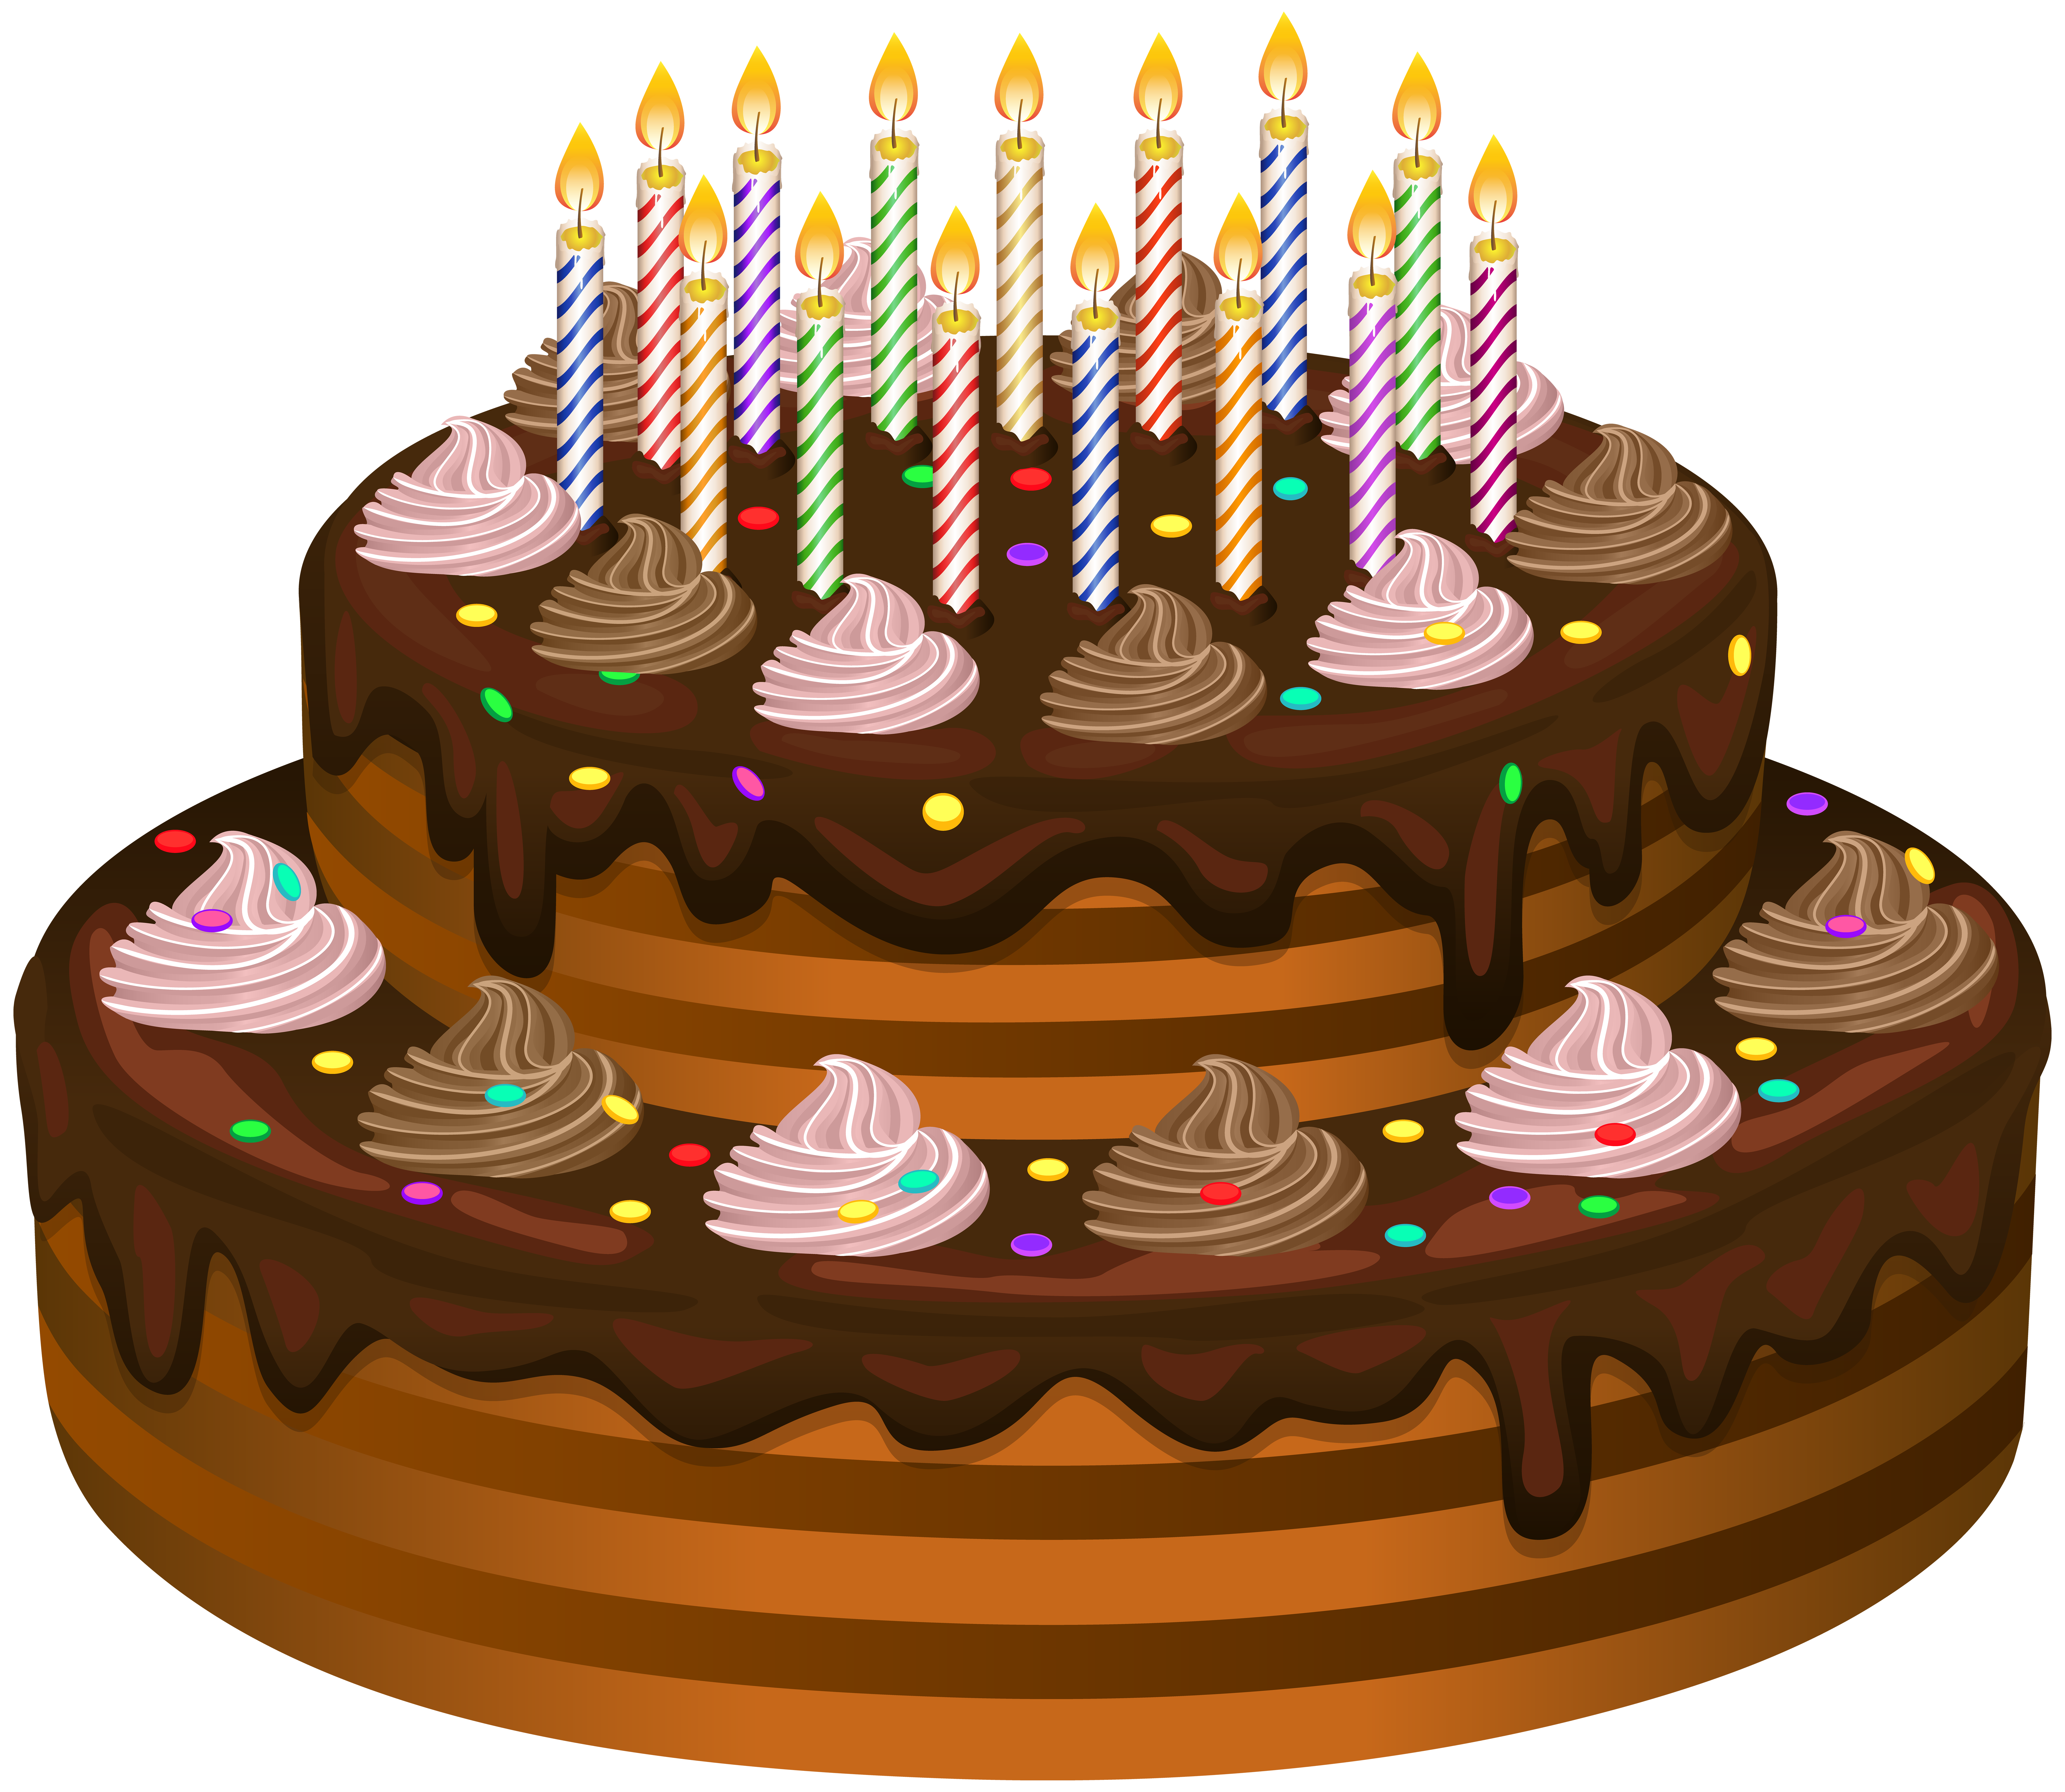 banner royalty free library Cake clip art gallery. Chocolate transparent birthday